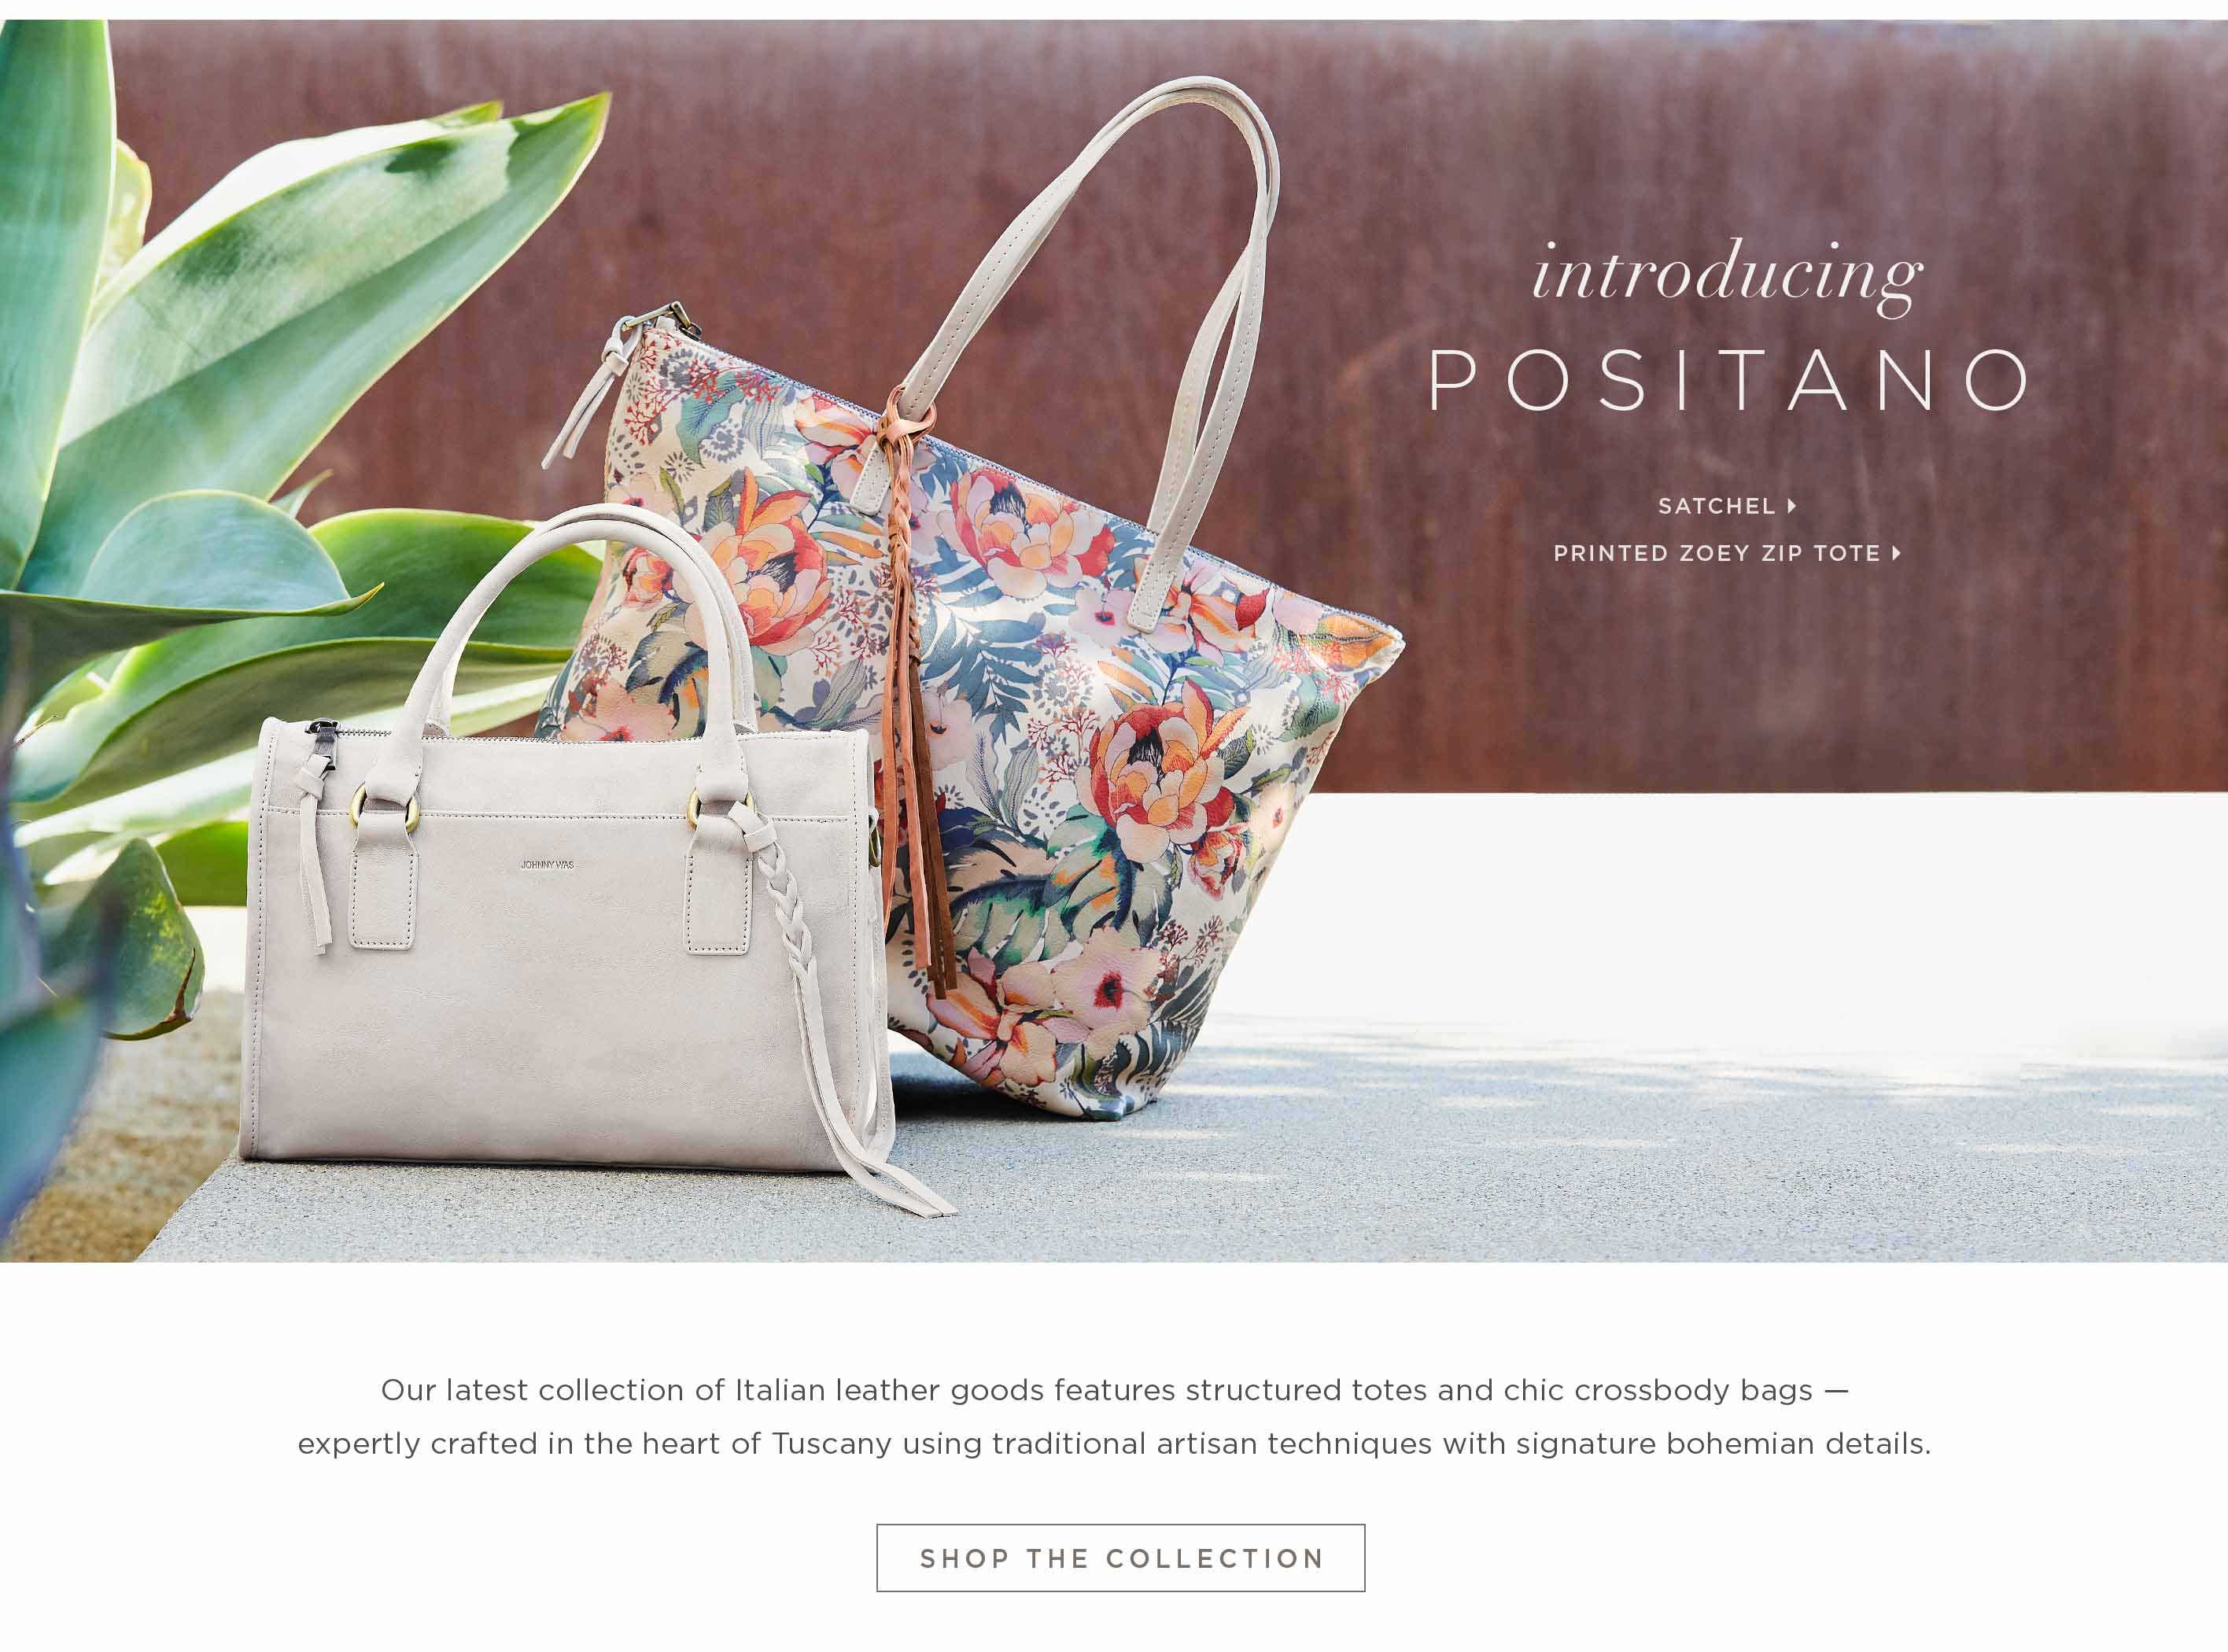 Introducing Positano - Satchel, Printed Zoey zip Tote - Our latest collection of Italian leather goods features structured totes and chic crossbody bags — expertly crafted in the heart of Tuscany using traditional artisan techniques with signature bohemi